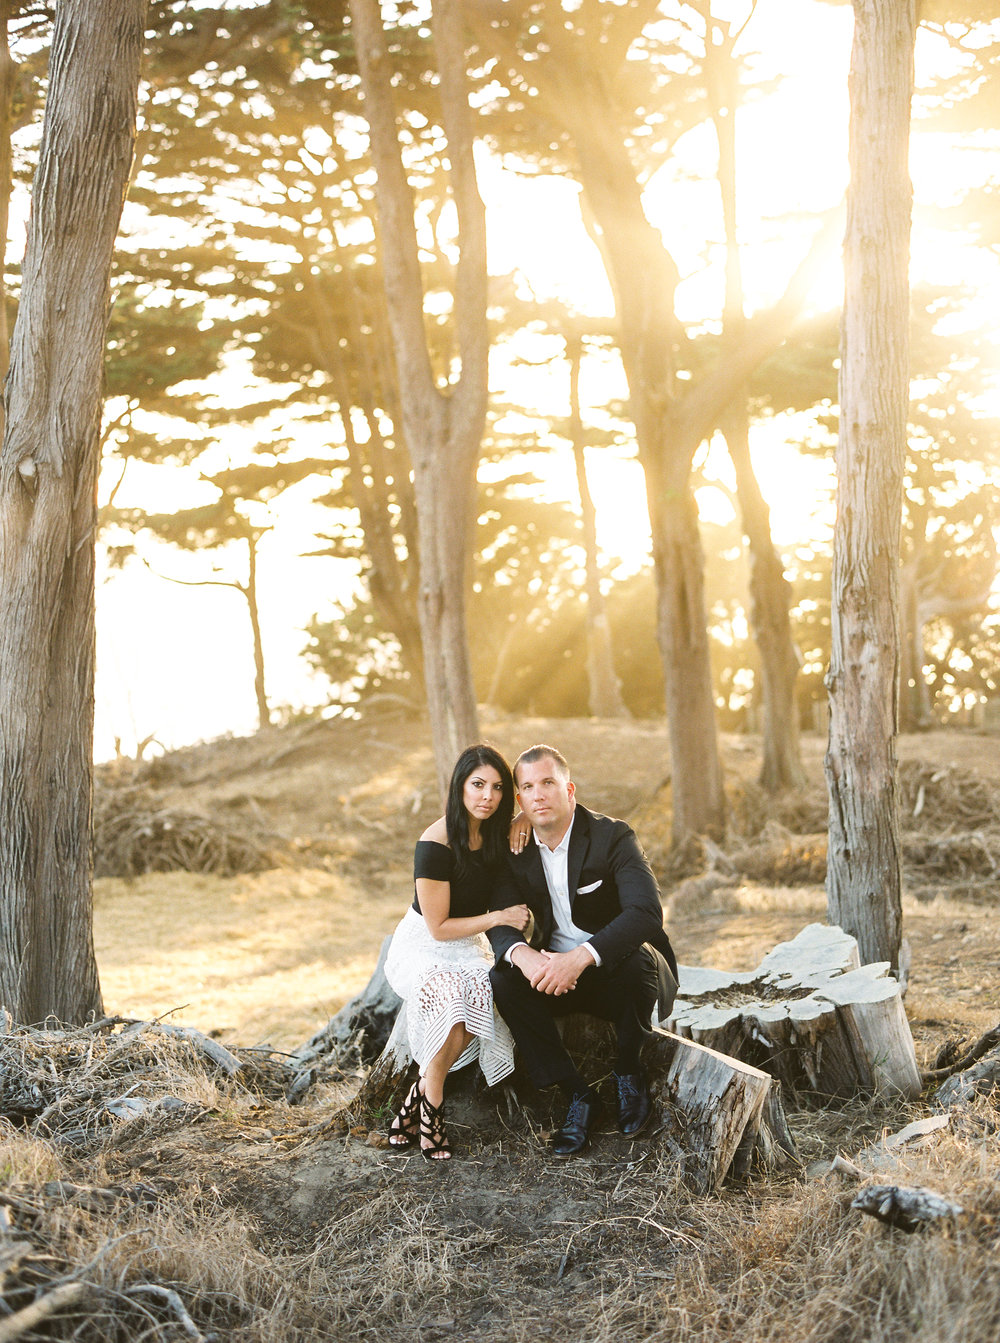 Suto-baths-engagement-photography-66.jpg